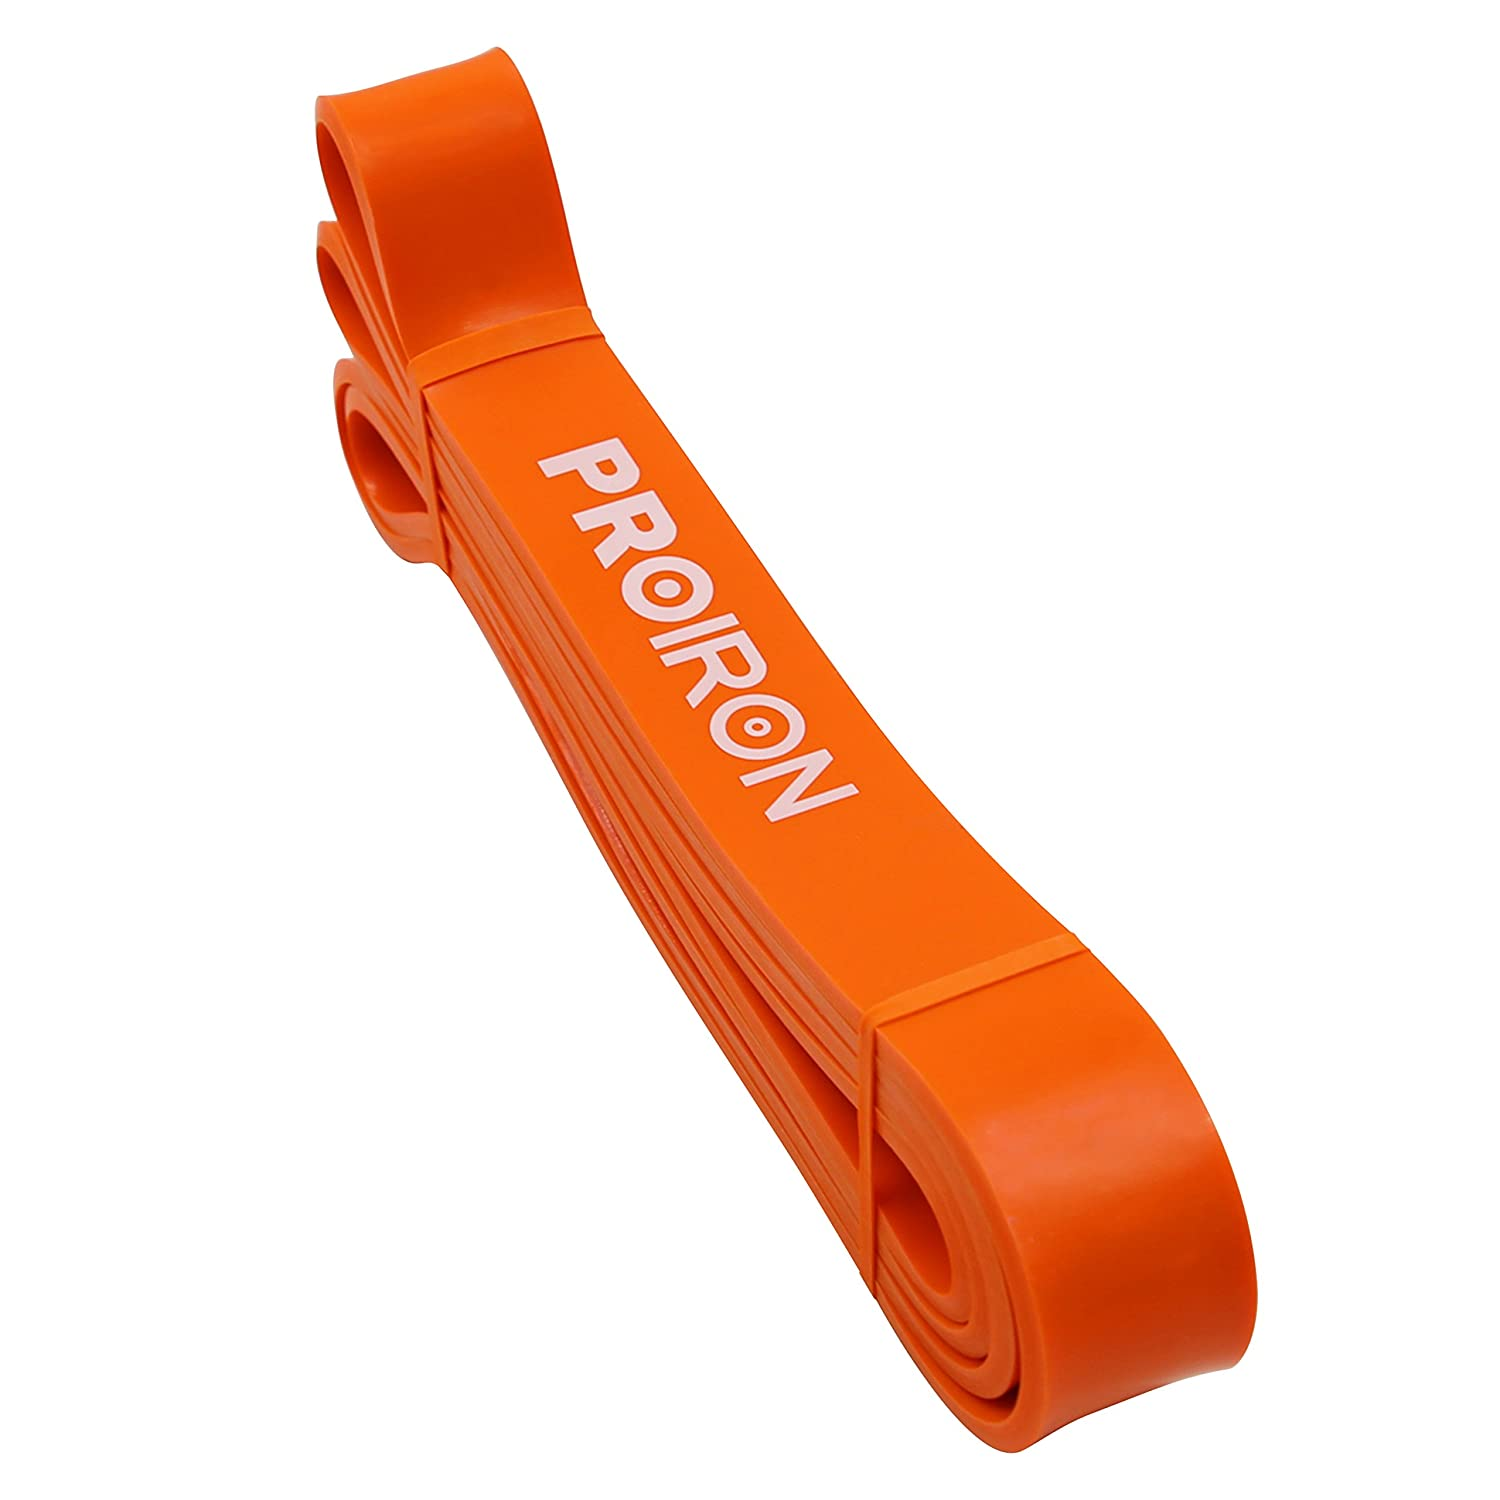 PROIRON Pull Up Assist Bands Resistance Bands Powerlifting Exercise Bands Stretch Mobility Band Single or Set Length 208cm SHANXI REGENT WORKS INC PRO-ZLD-5